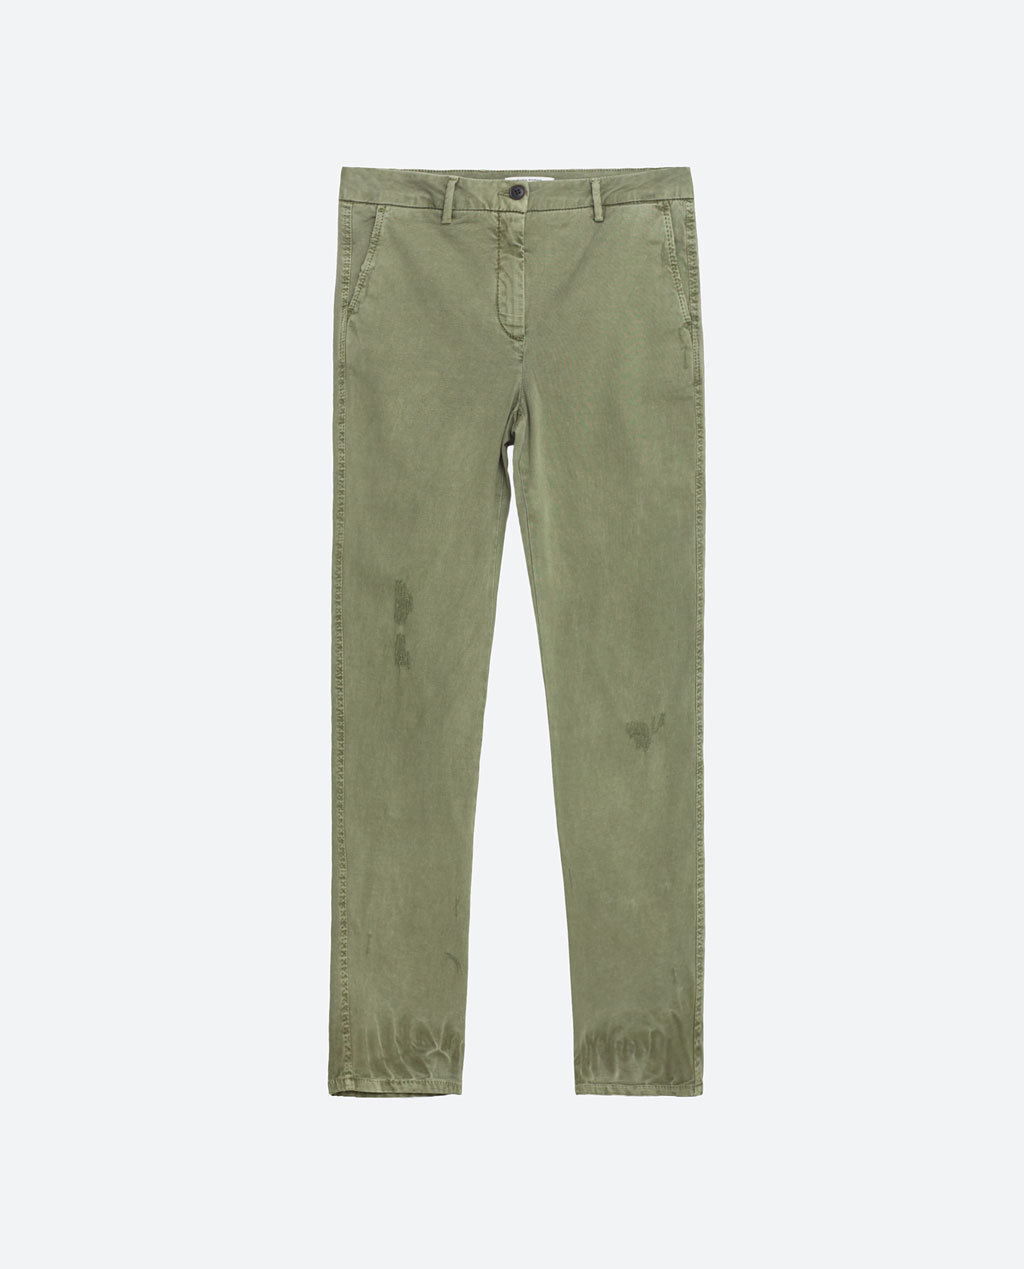 Chino Trousers - pattern: plain; waist: mid/regular rise; predominant colour: khaki; occasions: casual, holiday; length: ankle length; style: chino; fibres: cotton - 100%; waist detail: feature waist detail; texture group: cotton feel fabrics; fit: slim leg; pattern type: fabric; season: s/s 2016; wardrobe: basic